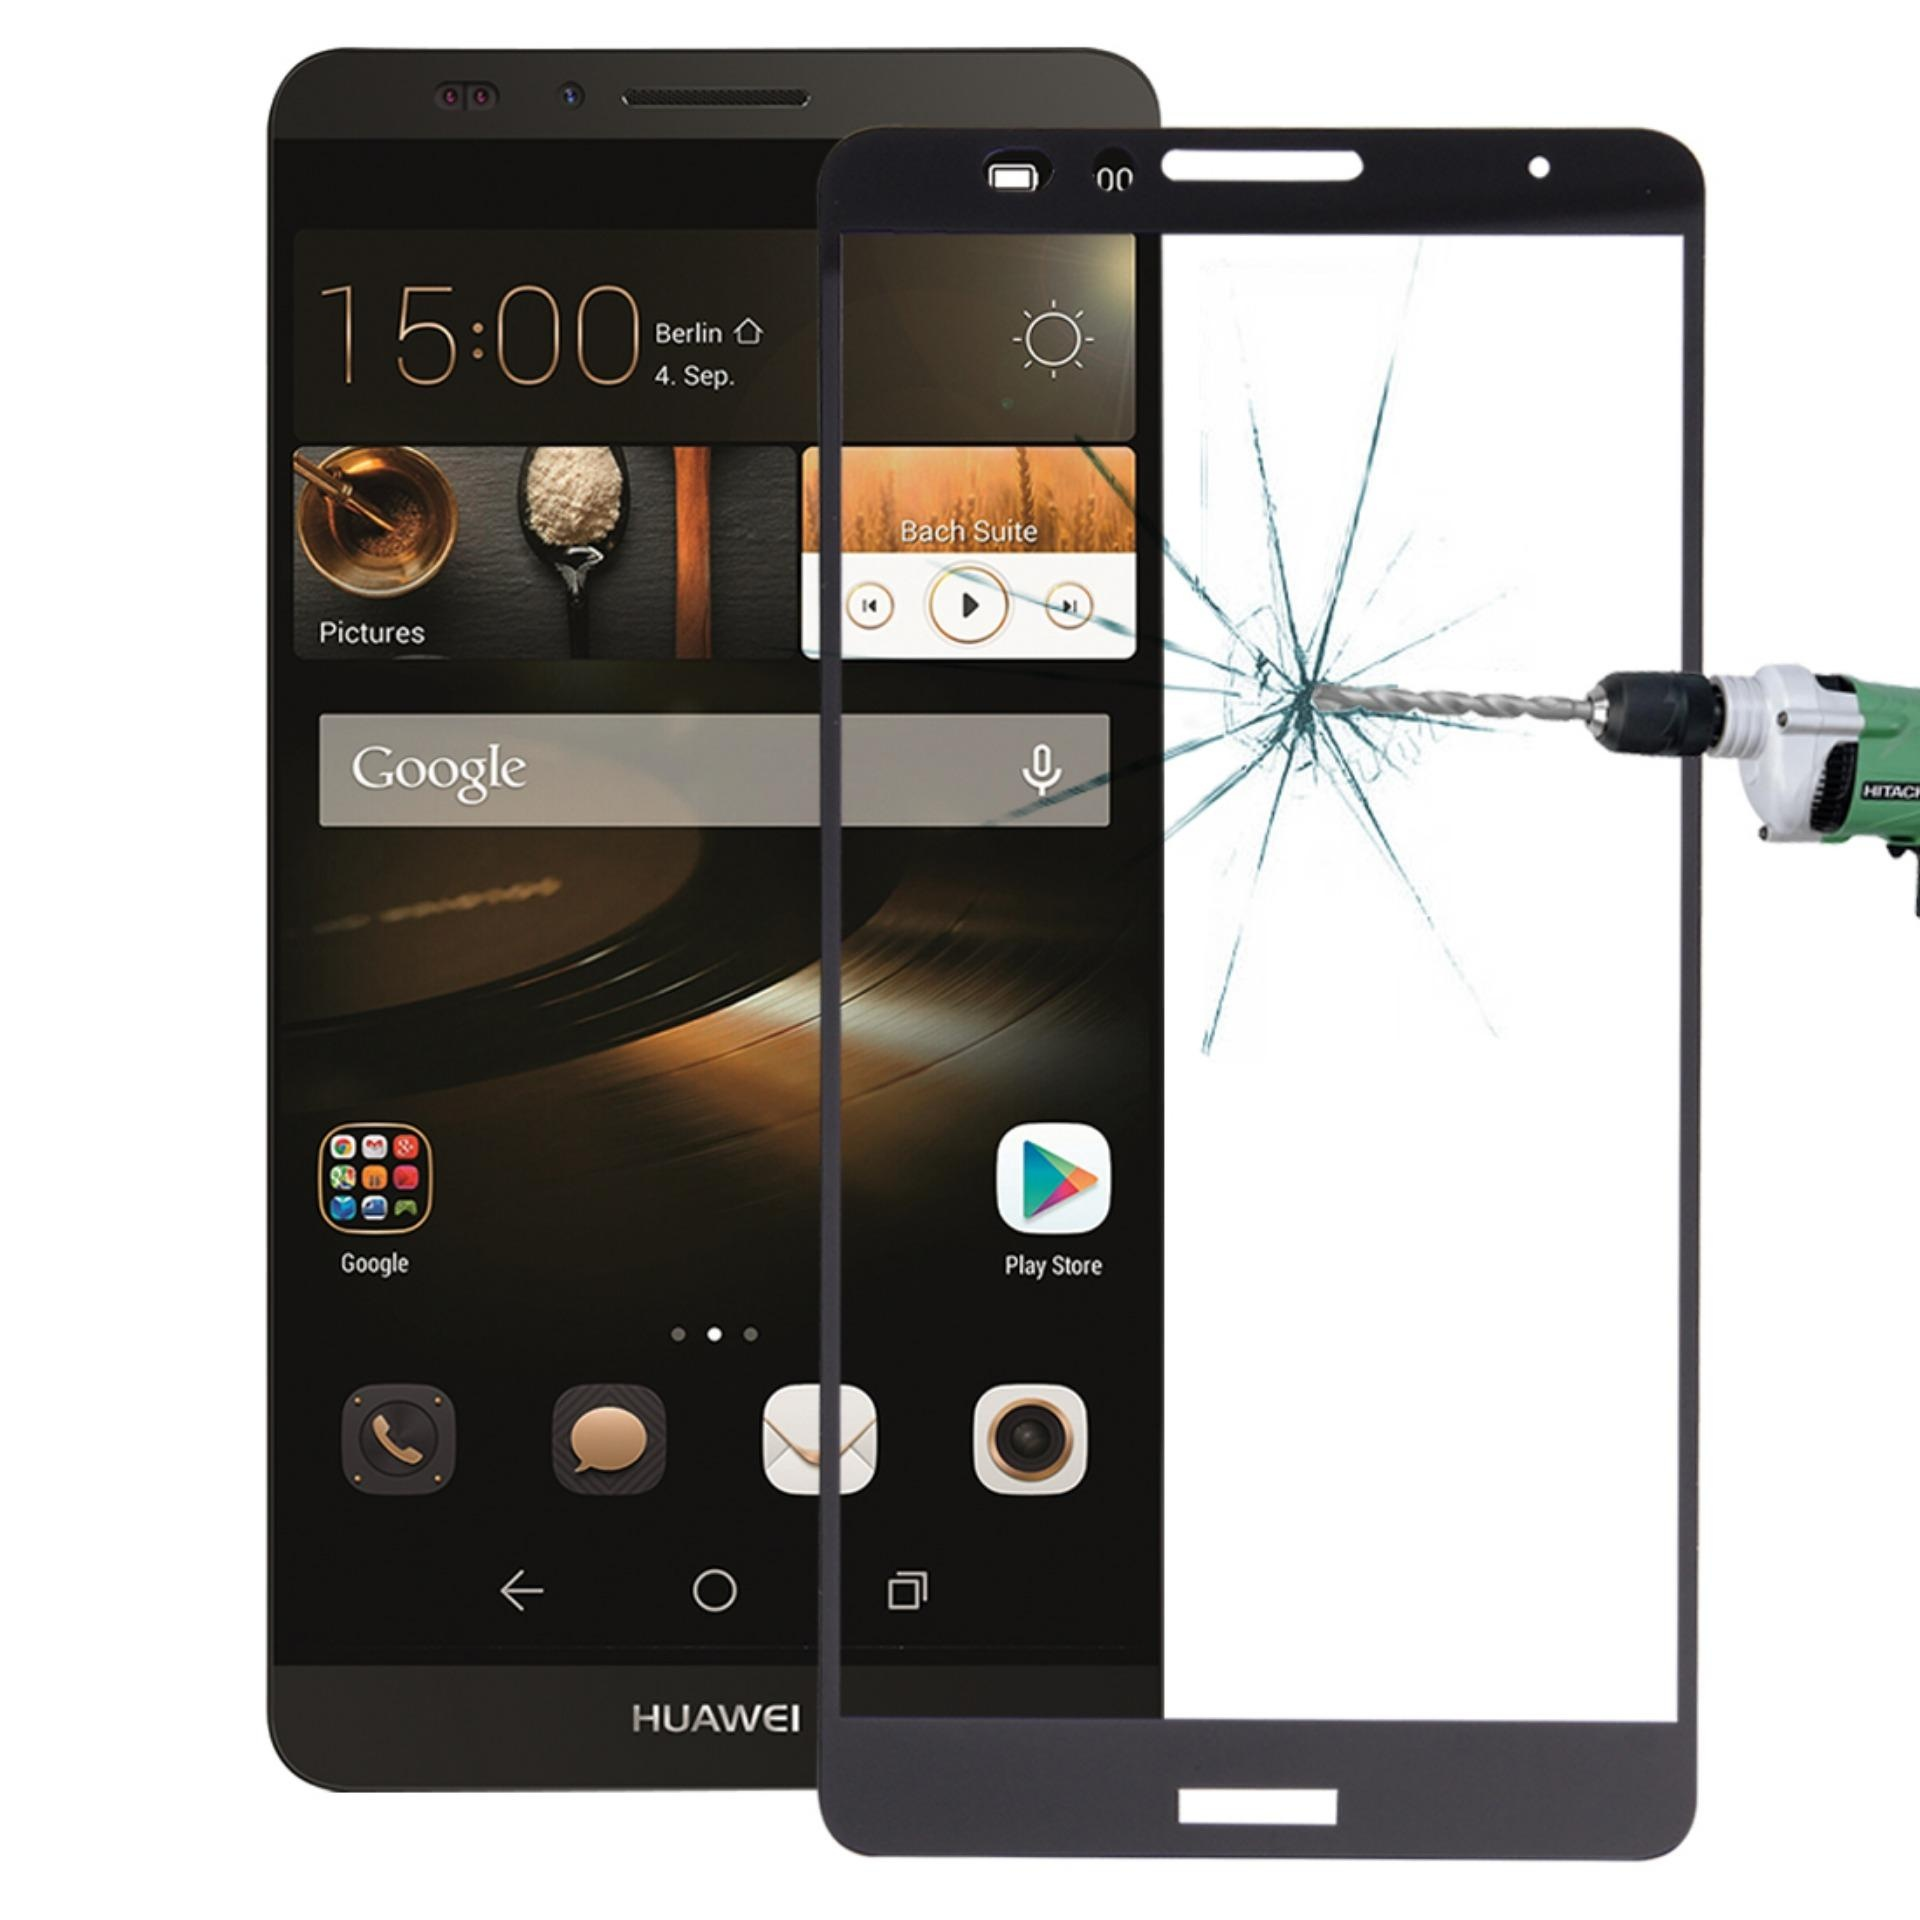 Harga Termurah Huawei Mate 7 26Mm 9 H Kekerasan Permukaan Tahan Ledakan Silk Screen Tempered Glass Full Screen Film Hitam Intl